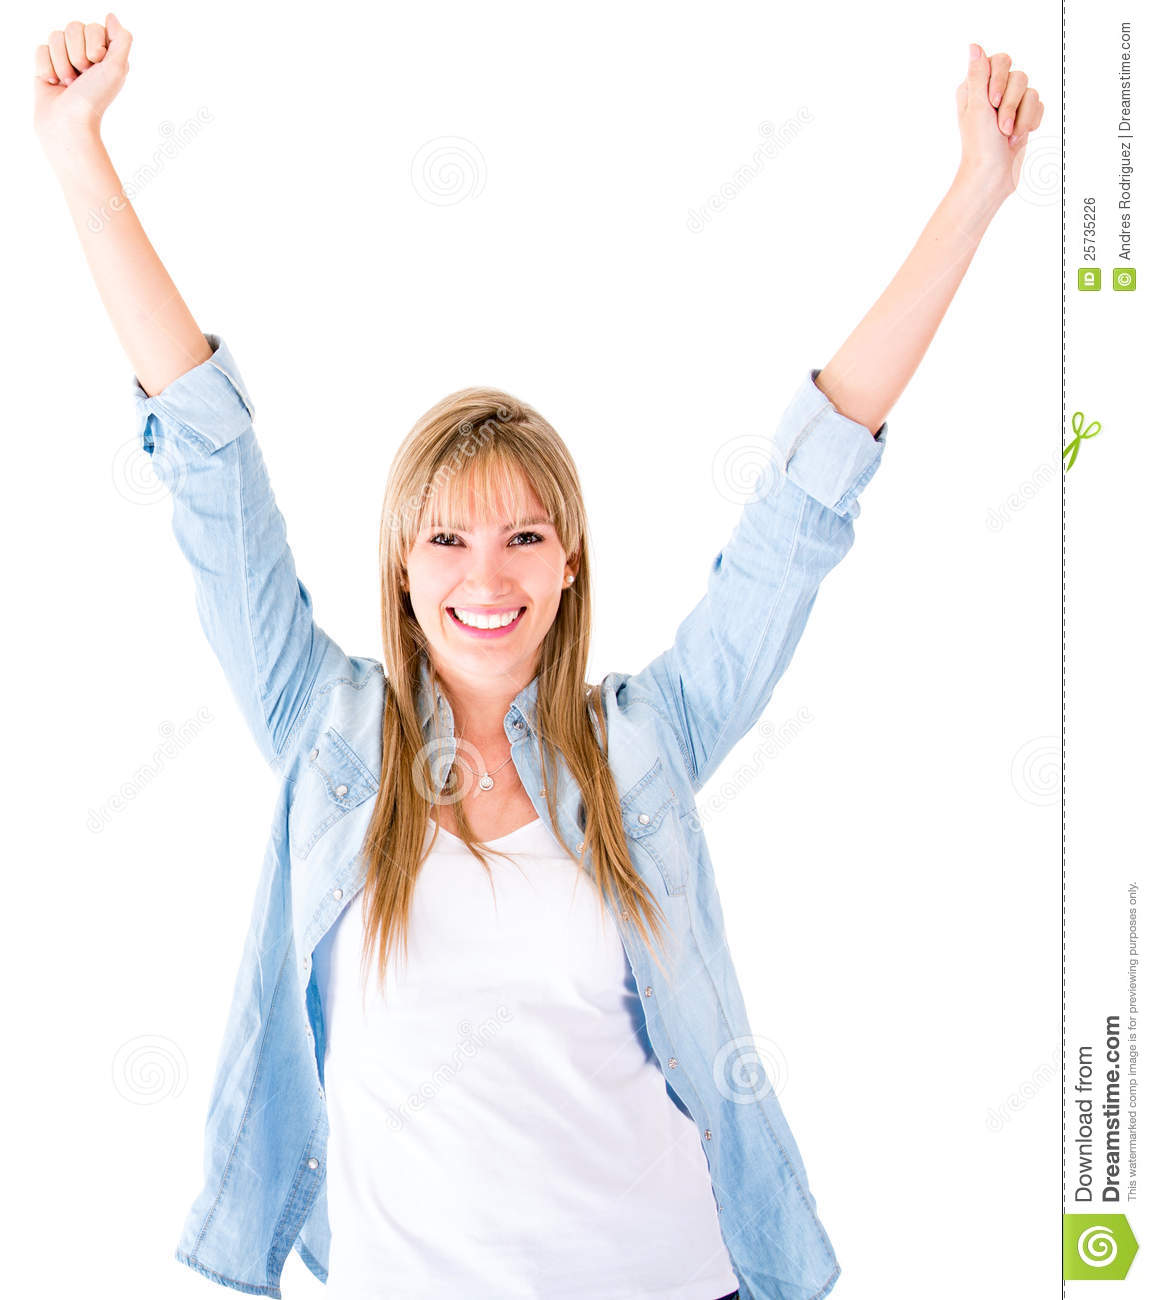 happy-woman-arms-up-25735226.jpg